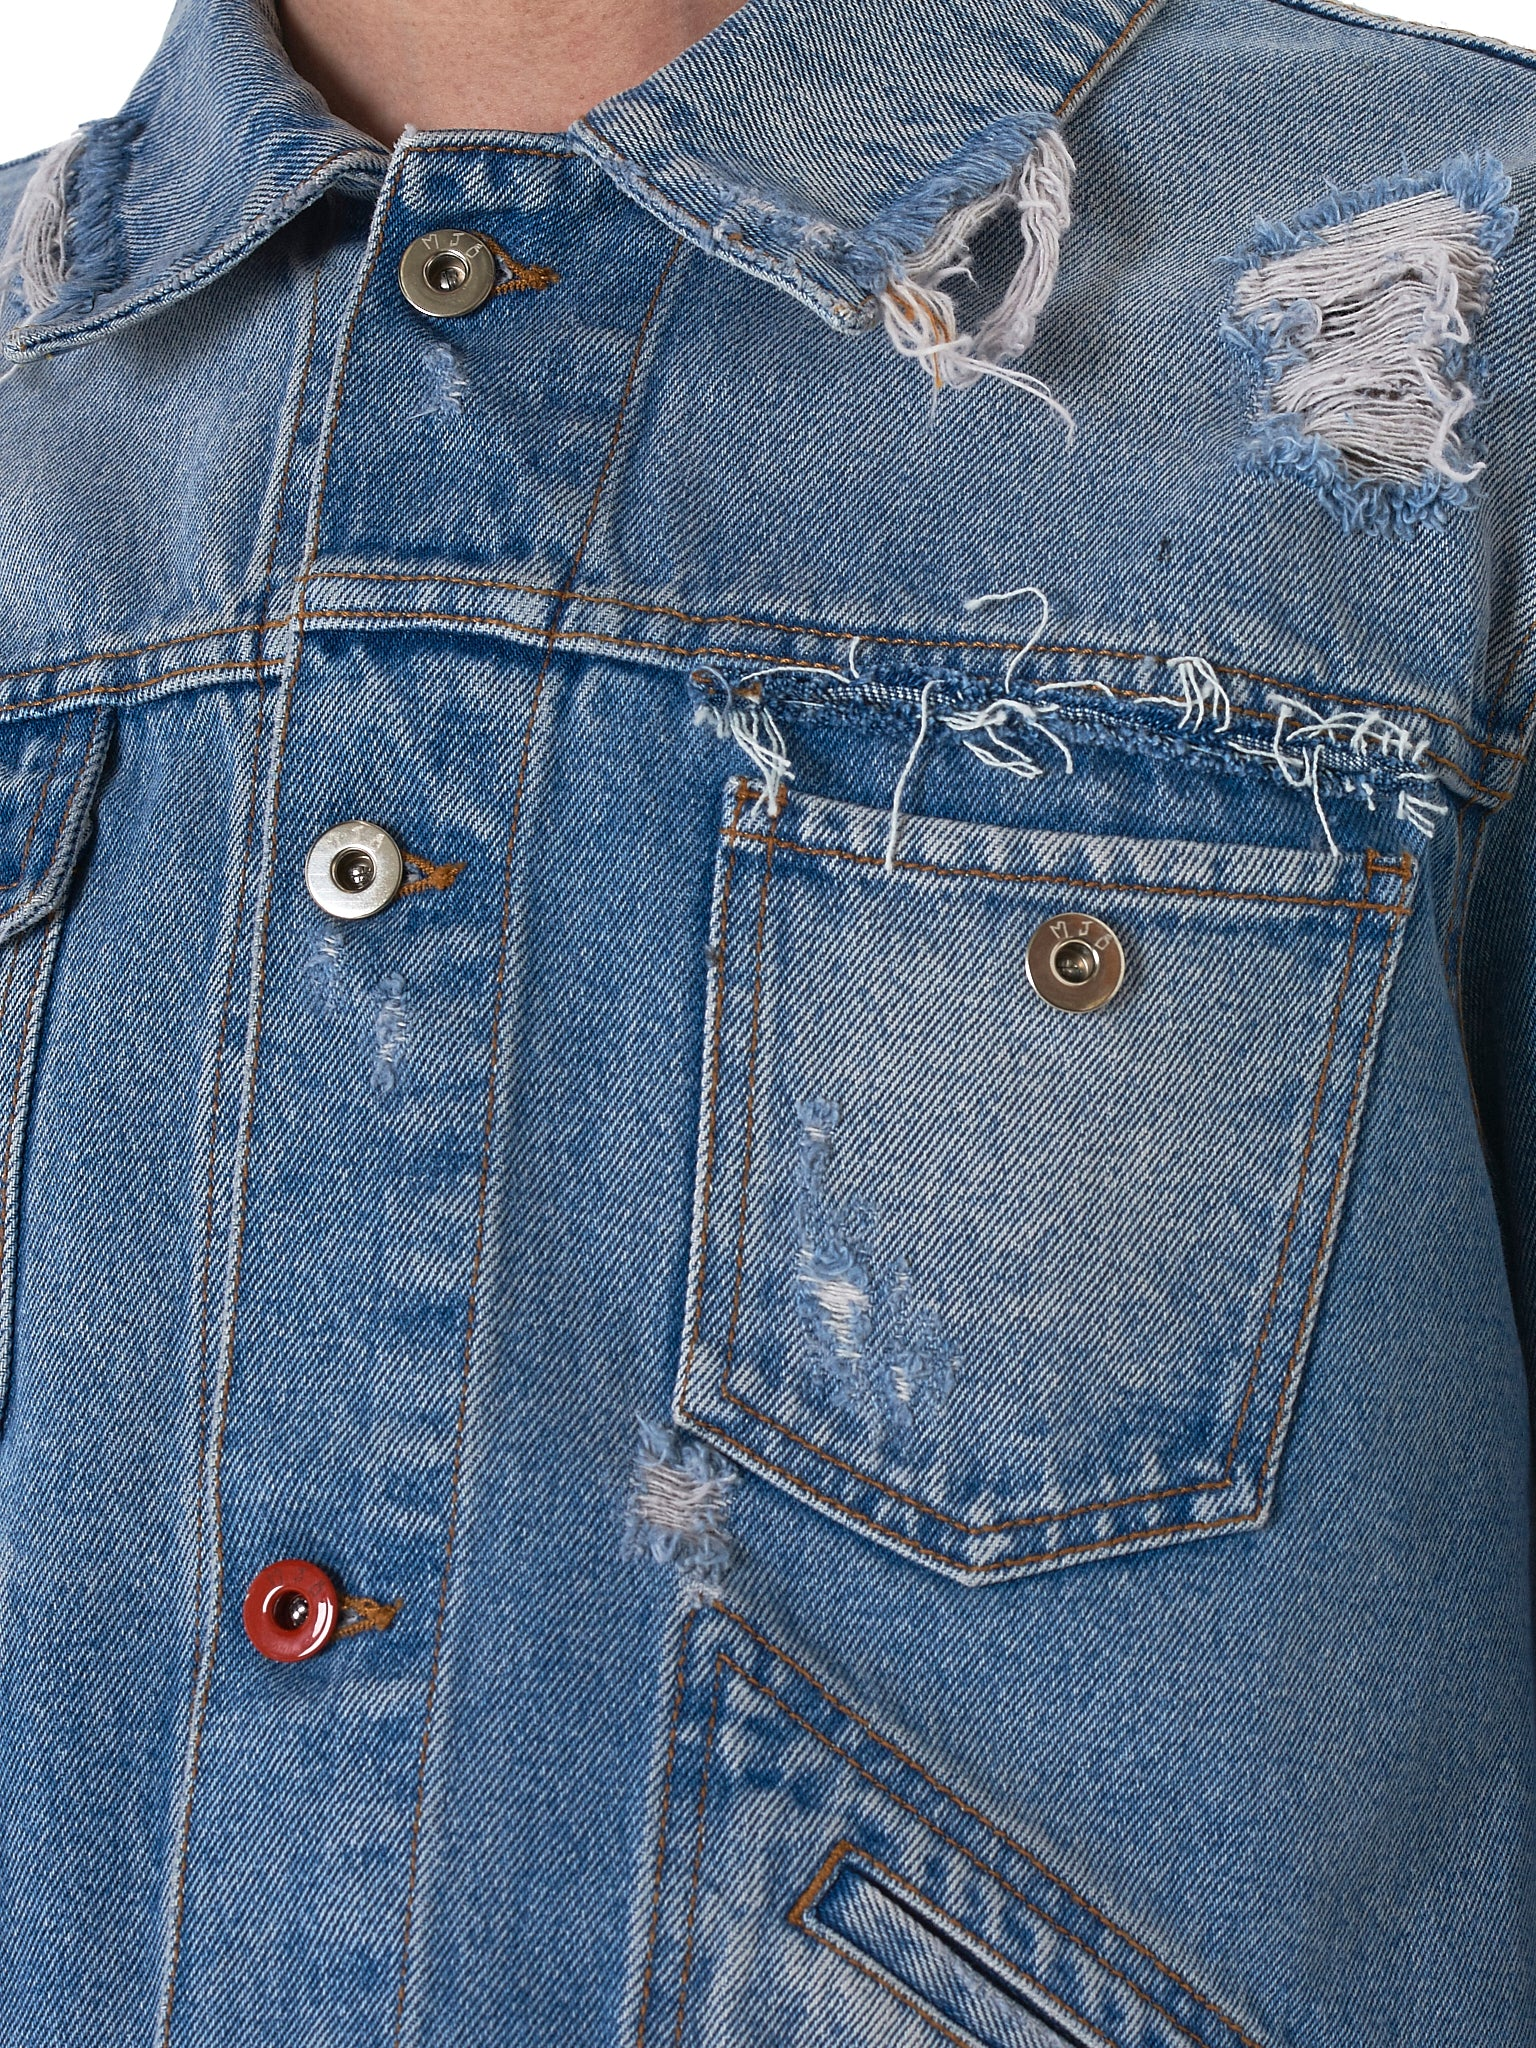 Distressed Denim Jacket (PAX-LIGHT-BLUE)